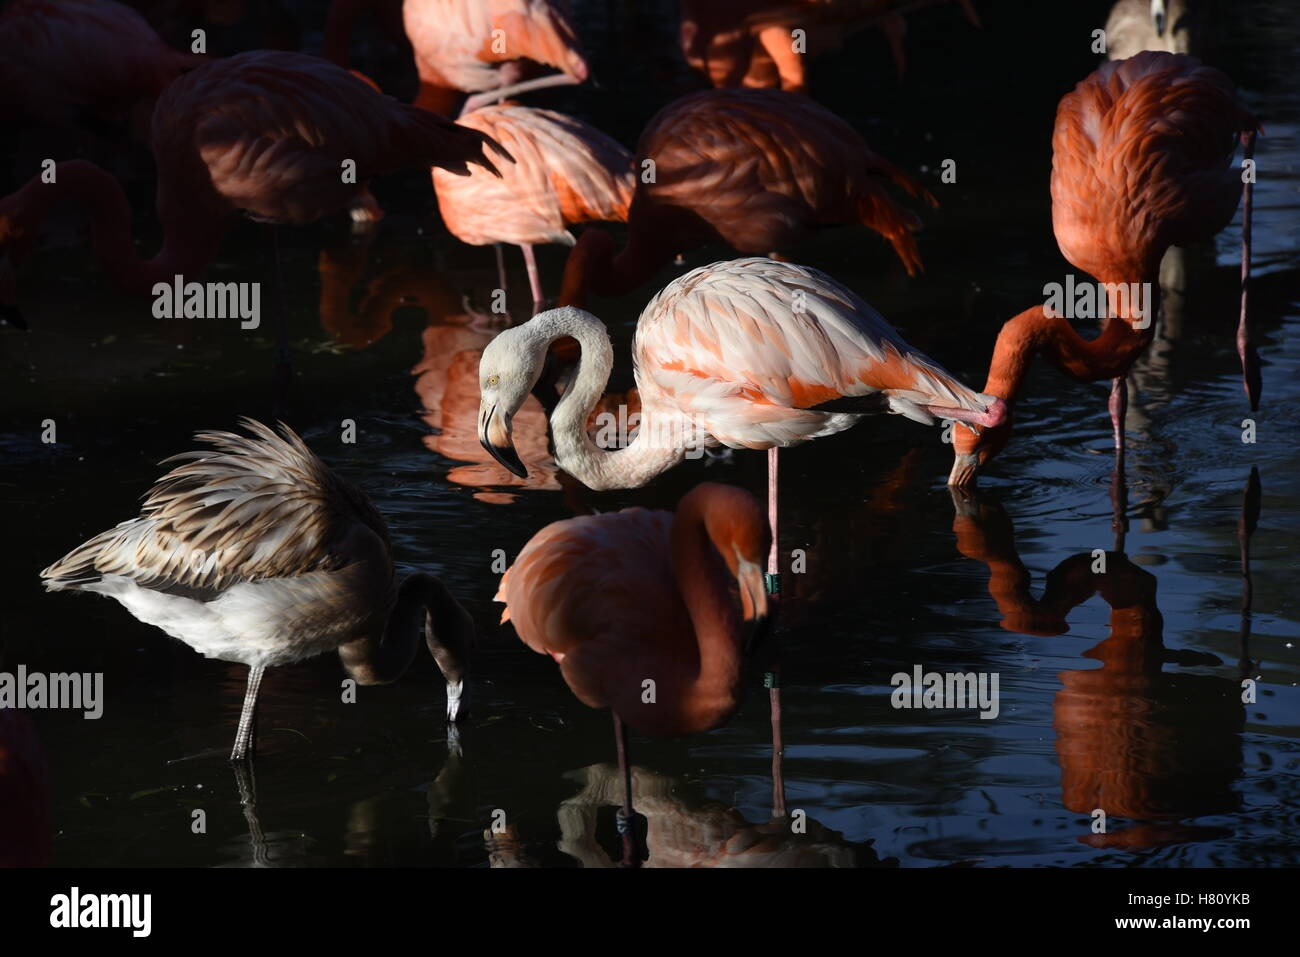 Madrid, Spain. 08th Nov, 2016. American flamingos pictured during sunset at Madrid zoo. The American flamingo, also Stock Photo